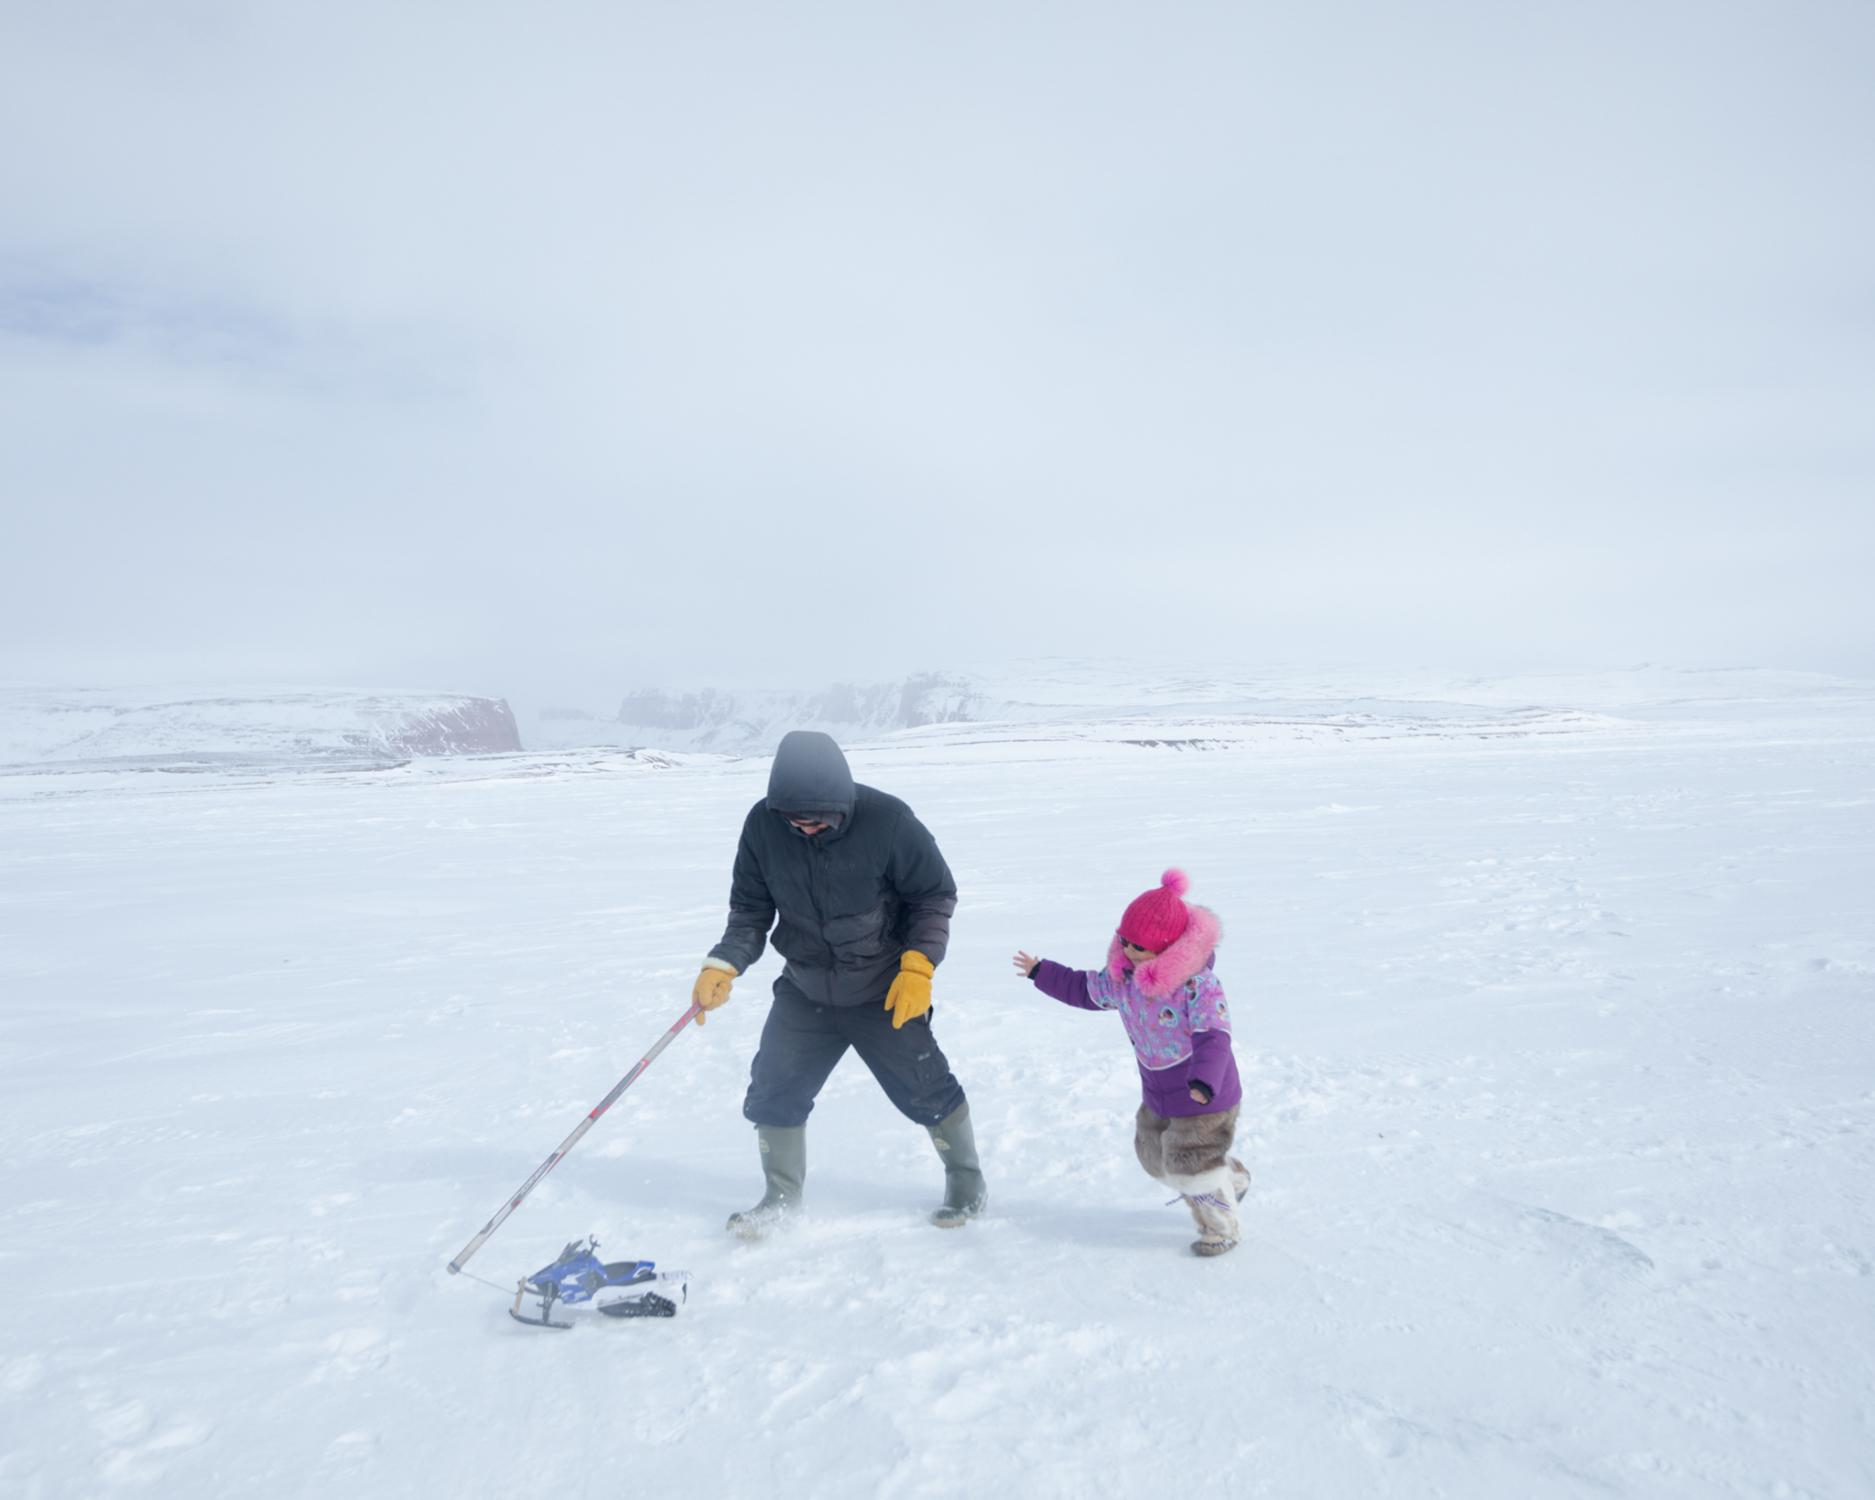 Darcy Enoogoo pulls a toy snowmobile across the sea ice for his daughter, Alana, during a tea break in their nine-hour snowmobile journey to a lake for Arctic Bay's annual Fishing Derby.